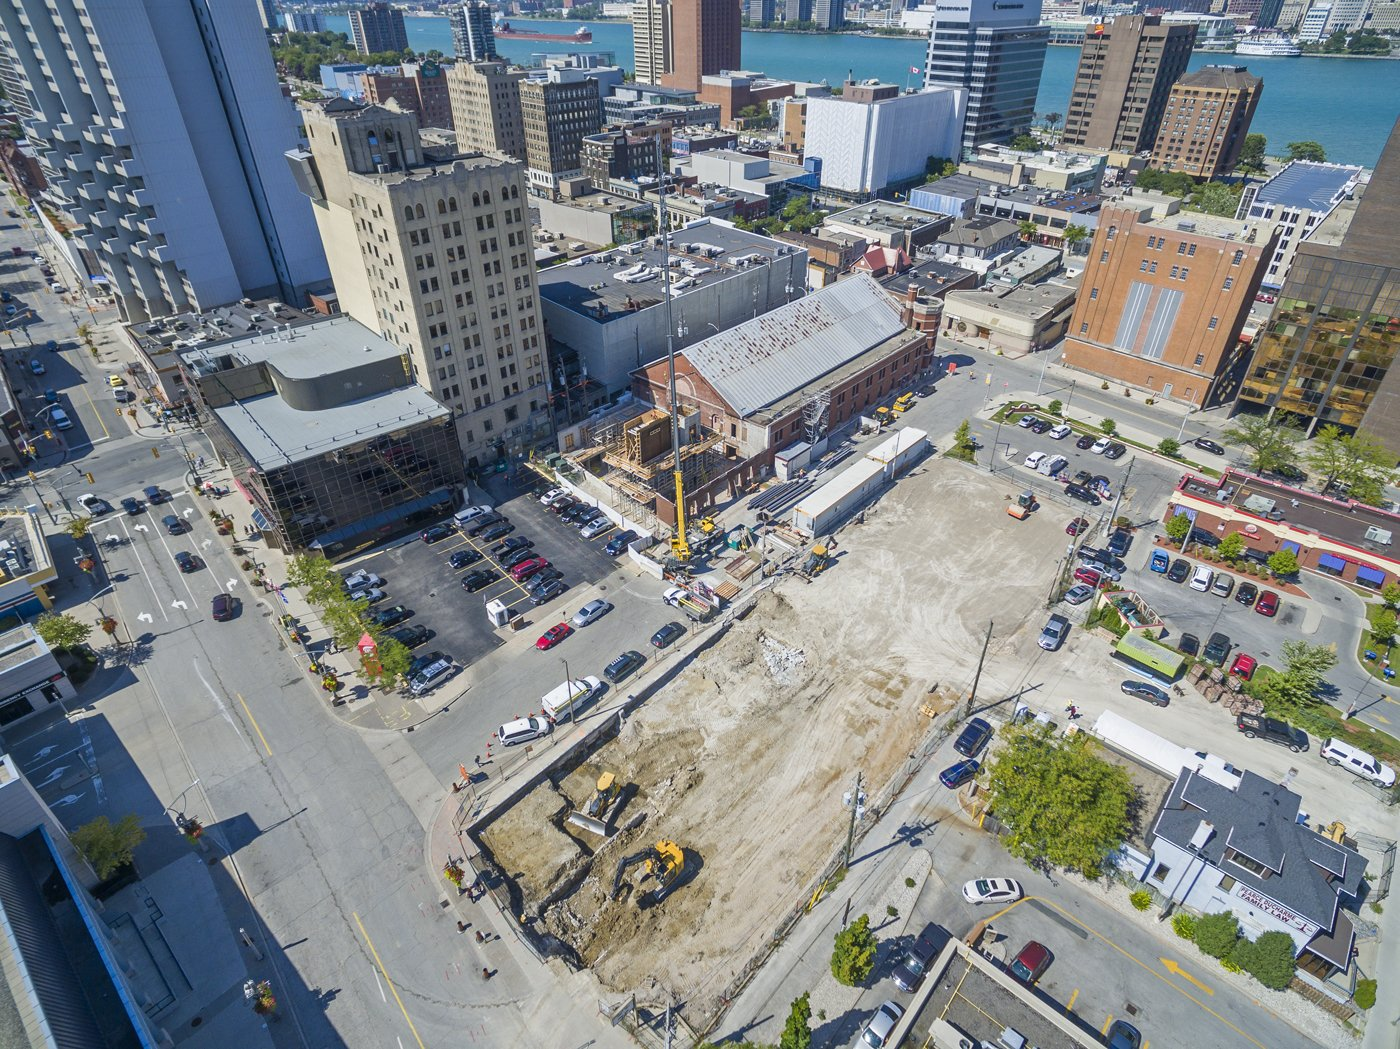 Aerial view of downtown campus construction